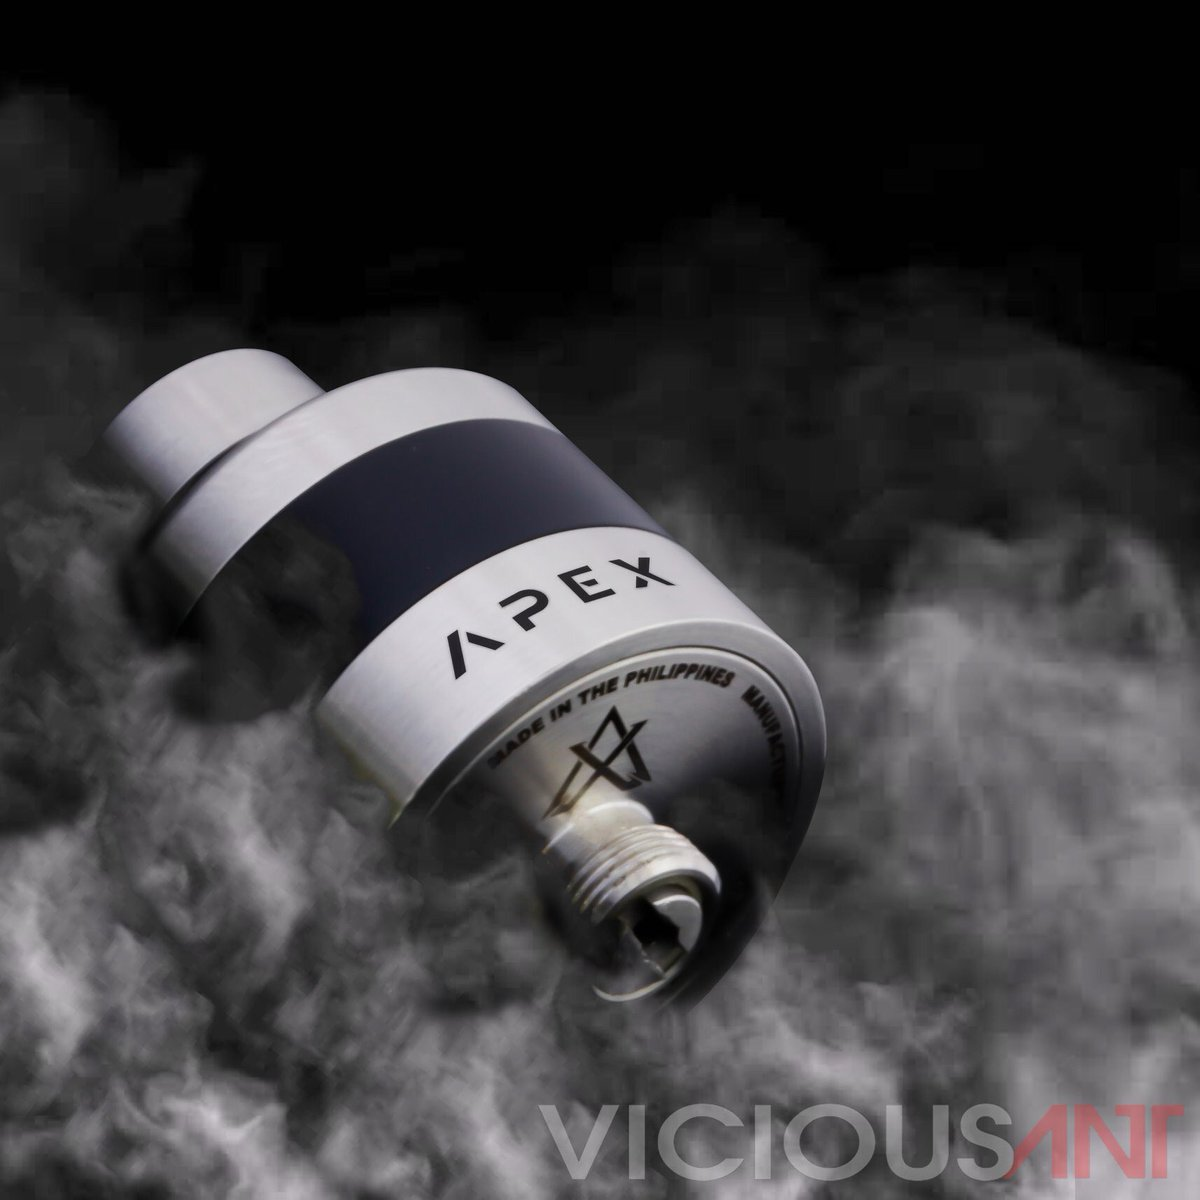 APEX RDA by Vicious Ant Philippines 🇵🇭 #StayVicious